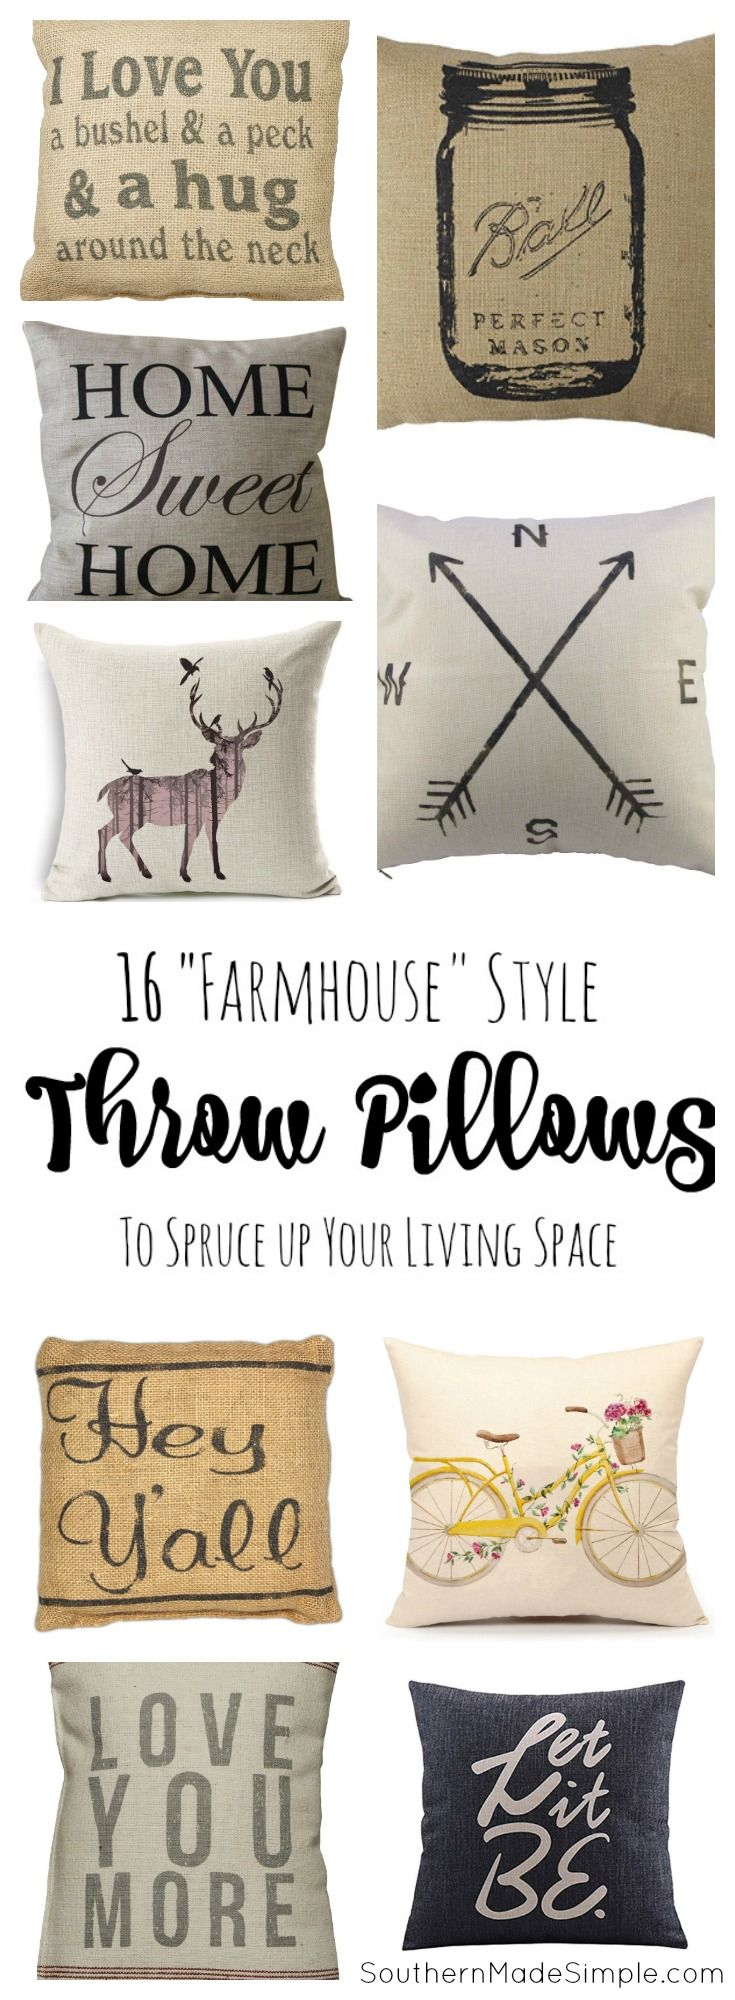 16 Farmhouse Pillows to Spruce up Your Decor - Southern Made Simple